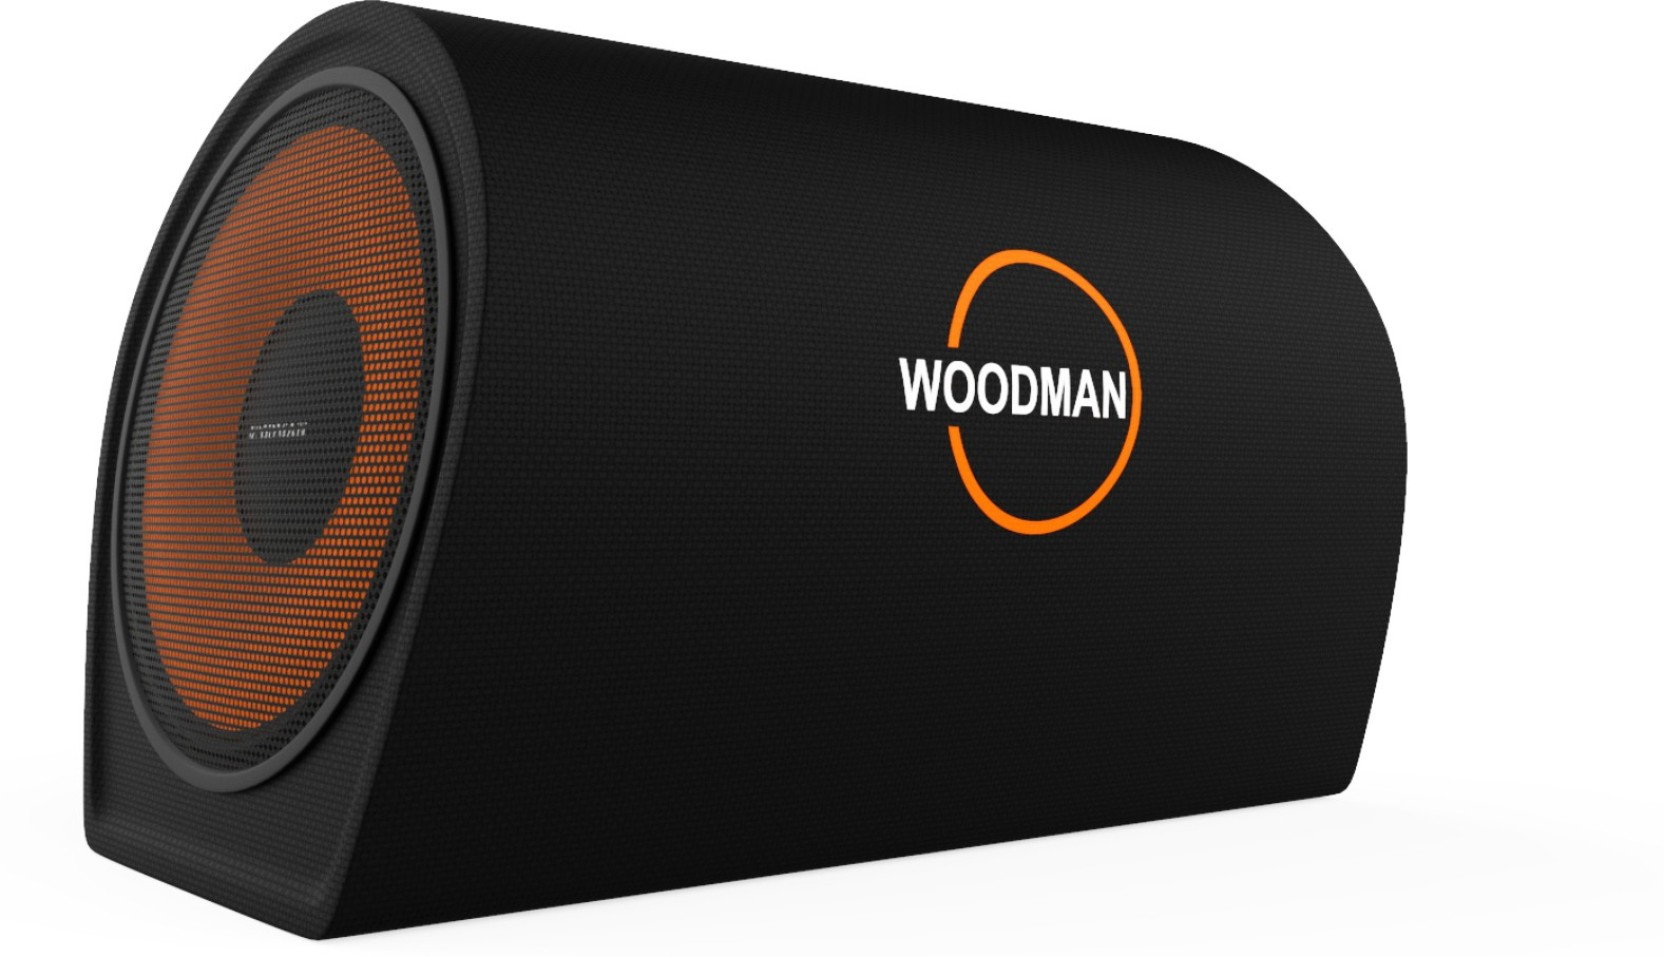 Woodman Bt10 Boombox Subwoofer Price In India Buy Wiring Diagram For 3 Dvc 4 Ohm Mono Amp Powered Rms Power 600 W